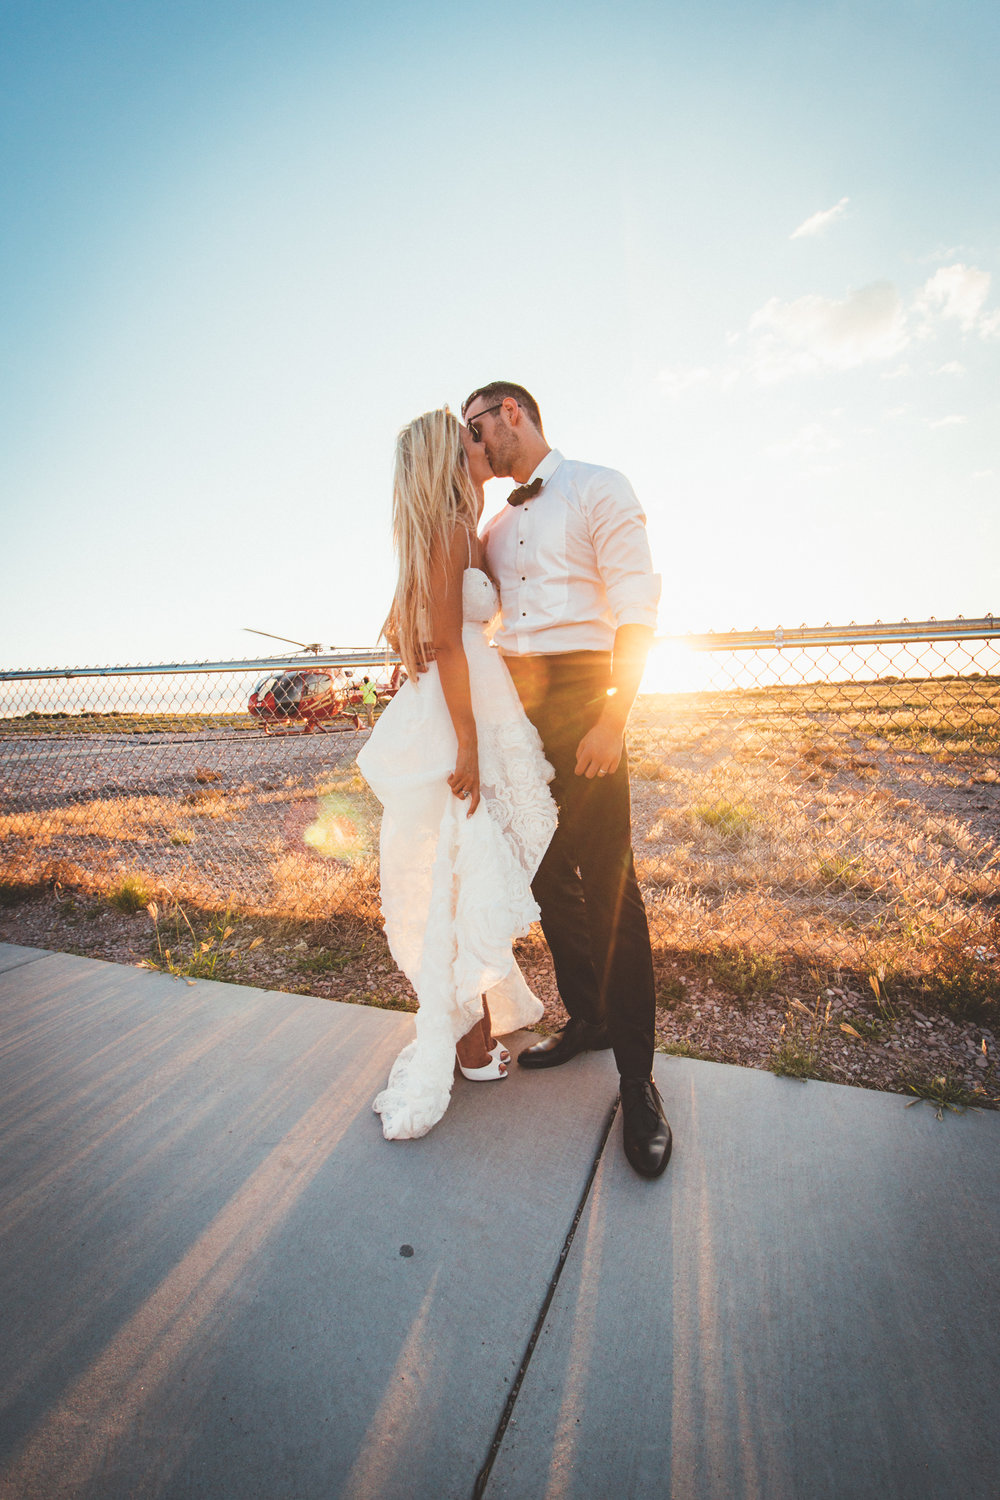 Sunlight Embraces the married couple